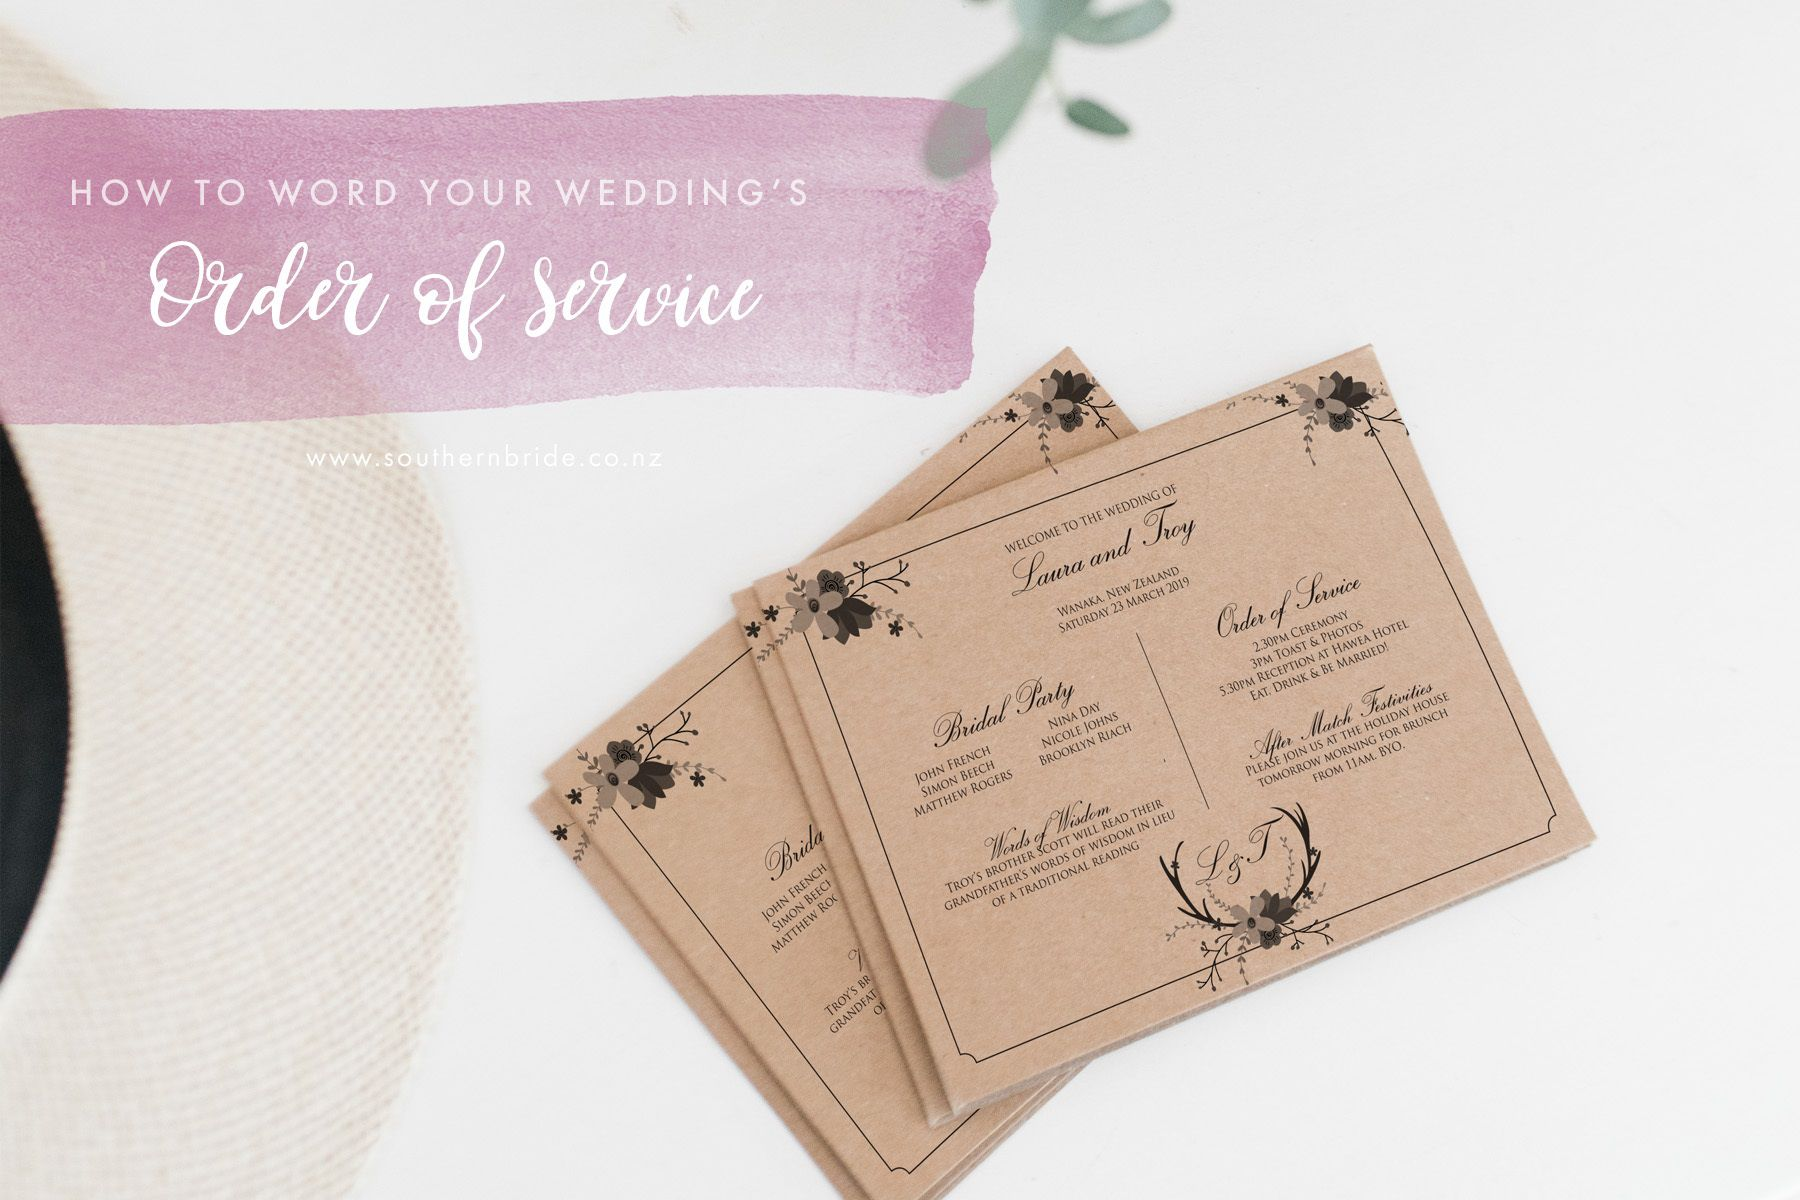 010 Stupendou Wedding Order Of Service Template Free Download Photo  Downloadable That Can Be PrintedFull